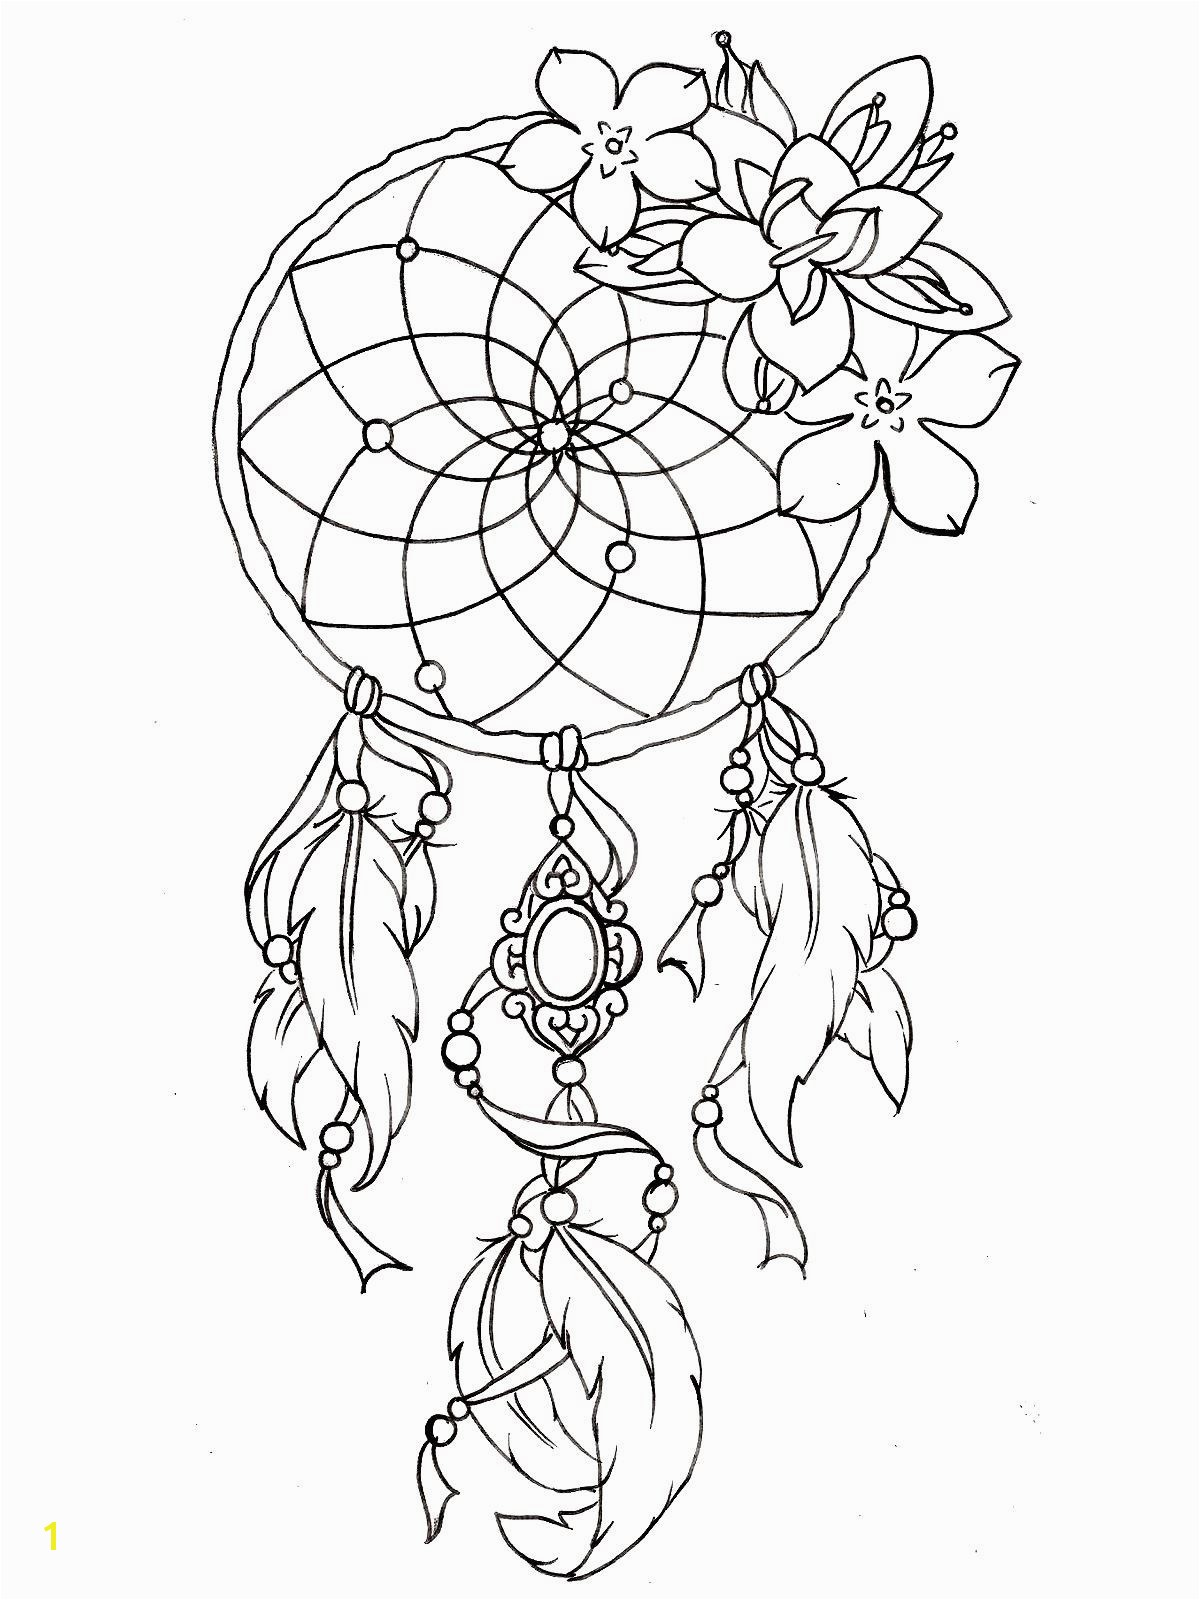 To print this free coloring page coloring dreamcatcher tattoo designs click on the printer icon at the right